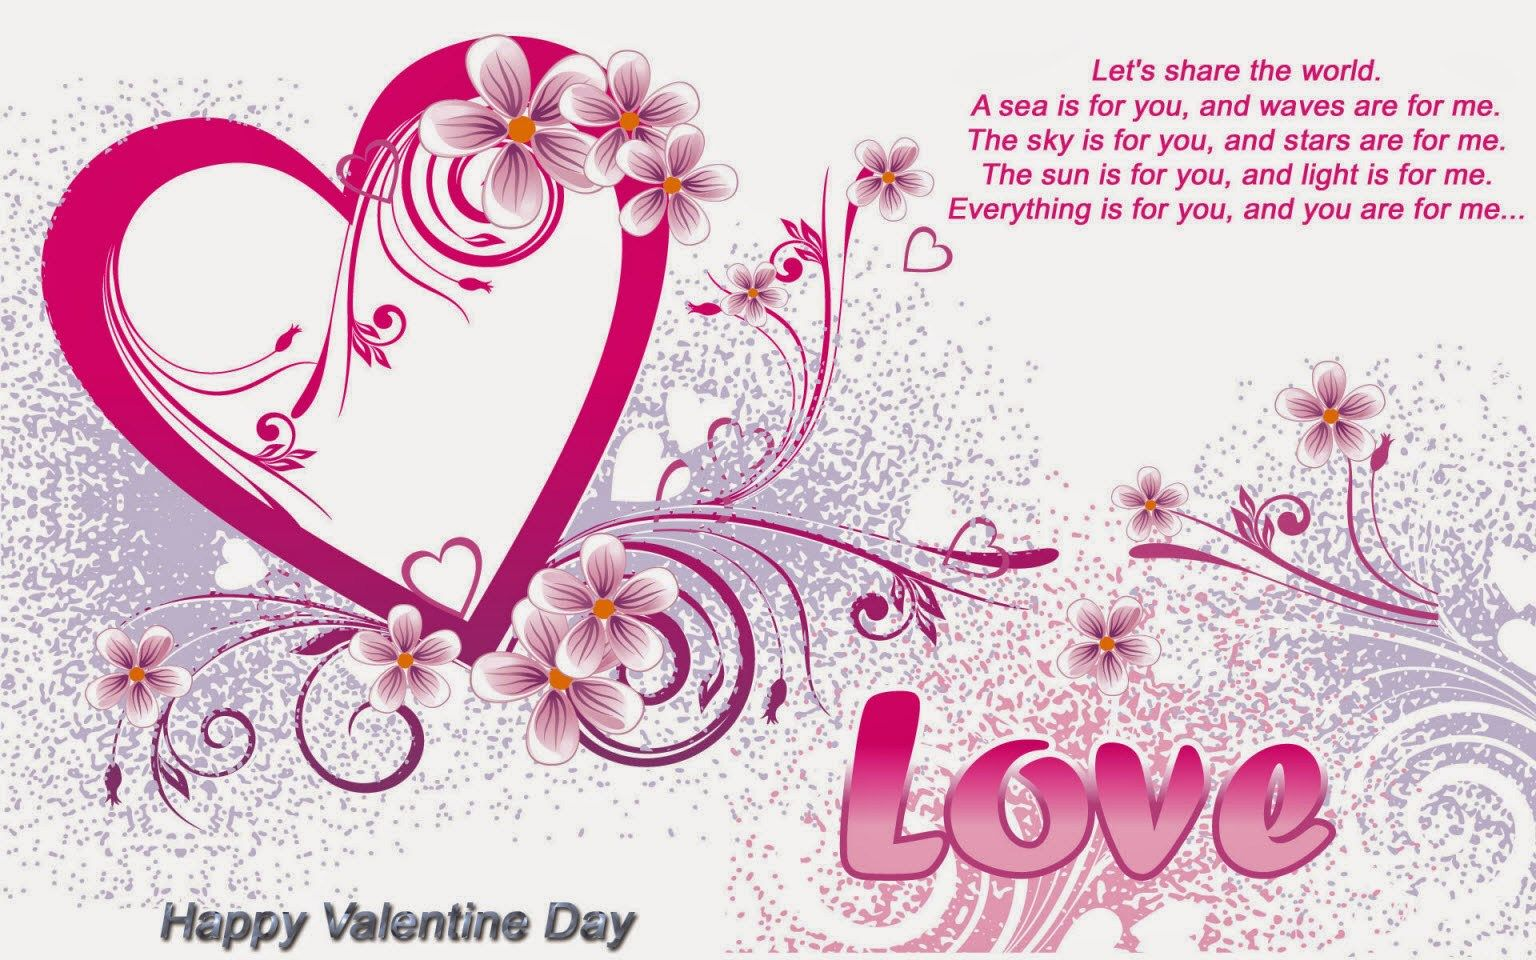 Valentines Day Romantic love letter ideas wishes for boyfriend